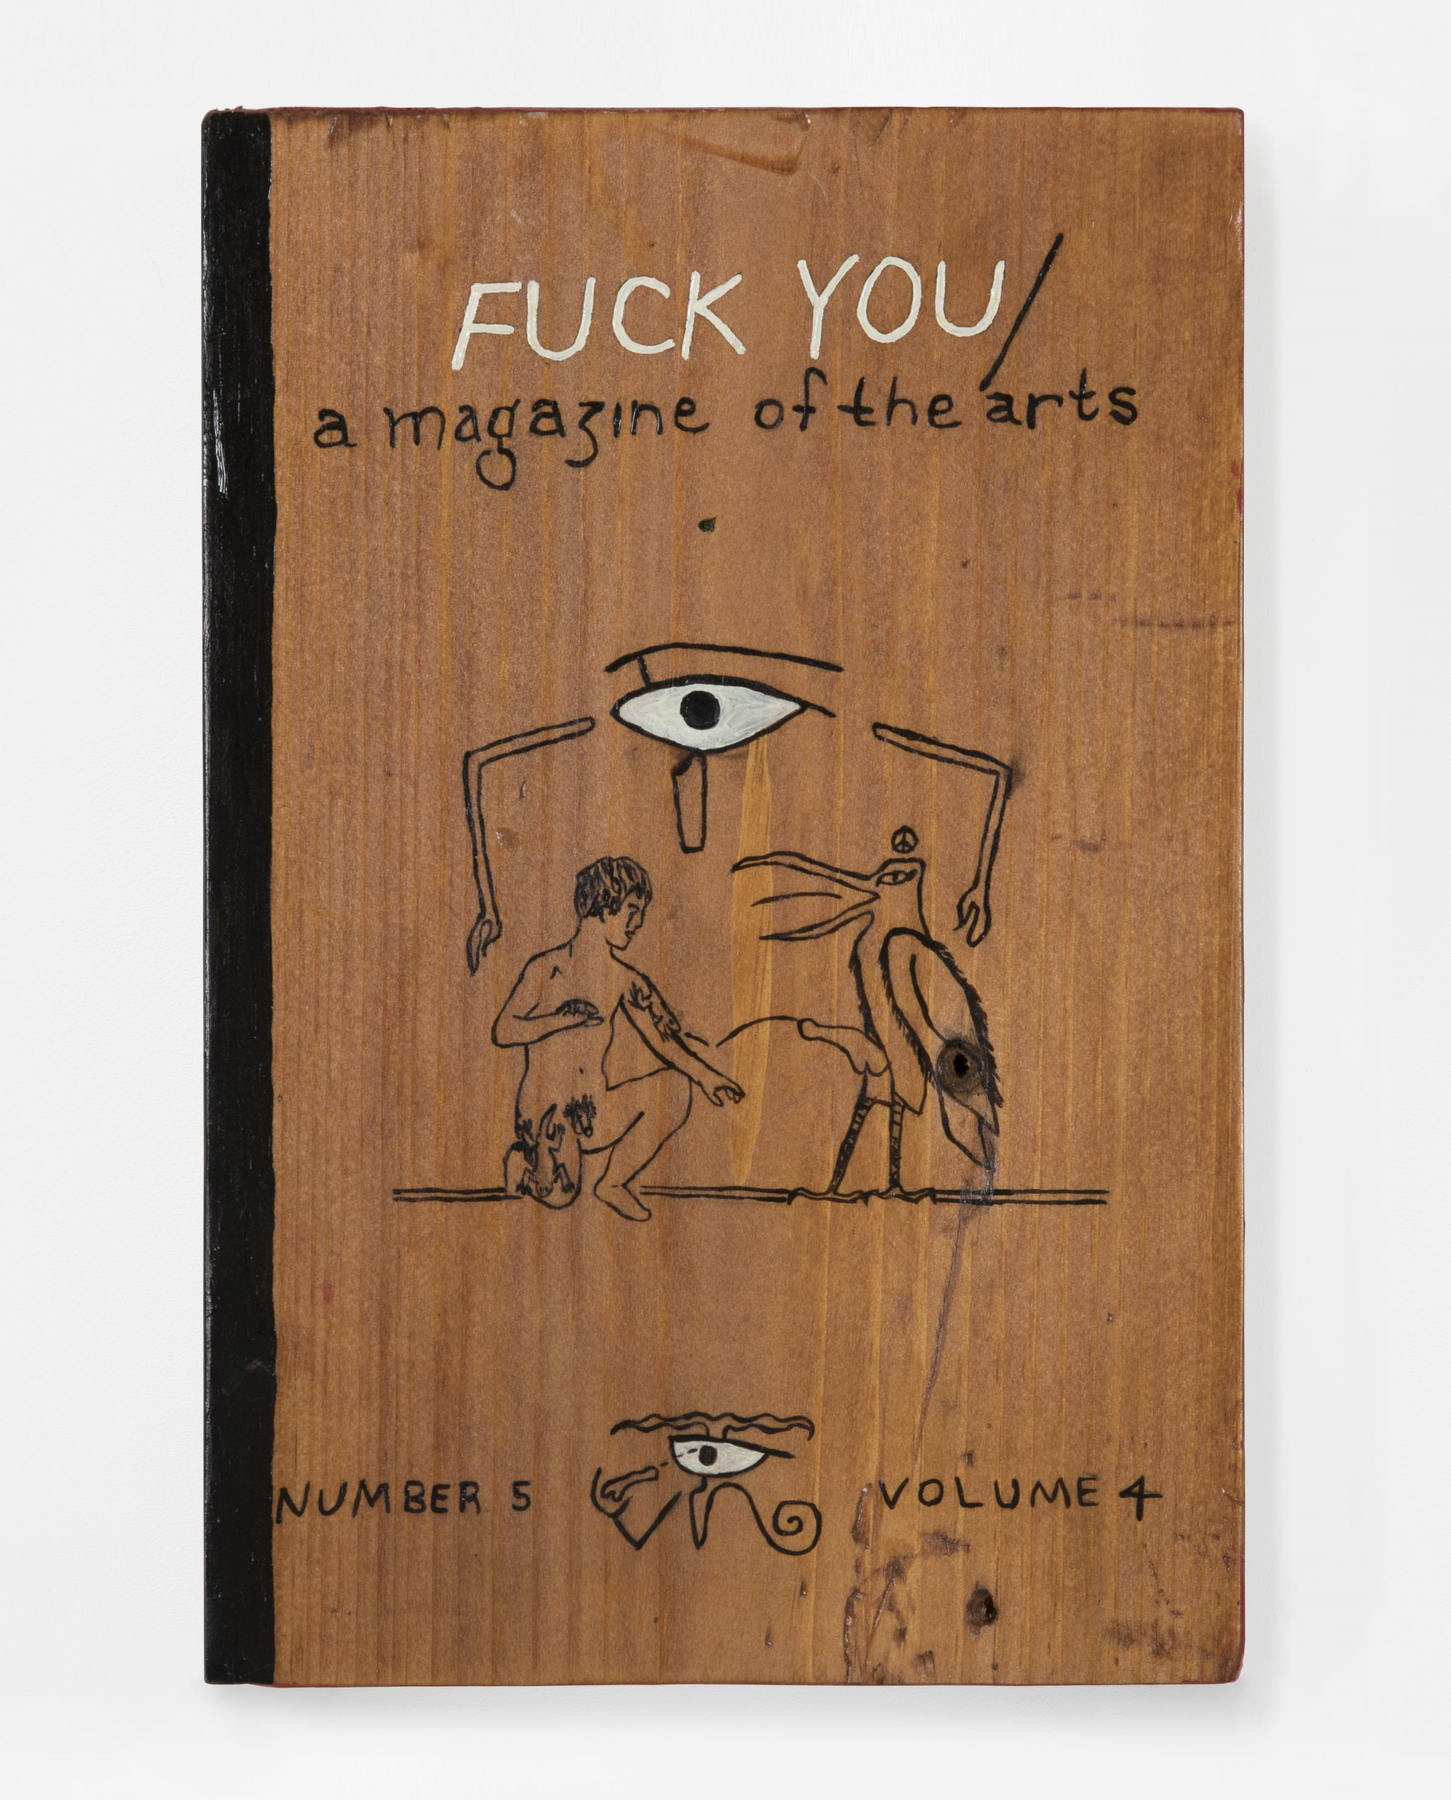 LC_Untitled_fuck you a magazine of the arts _300dpi